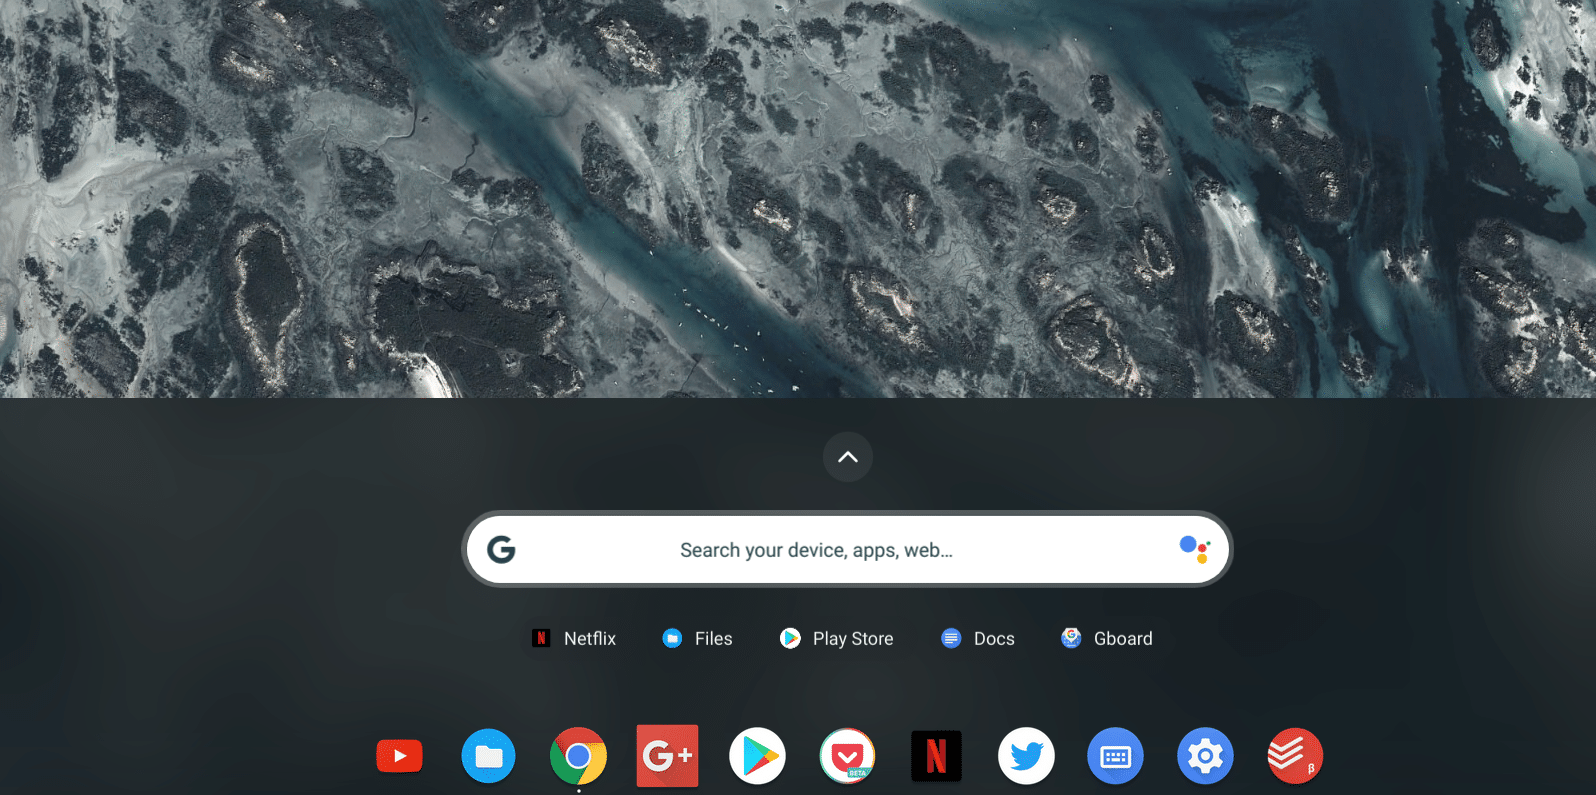 chrome os assistant in search